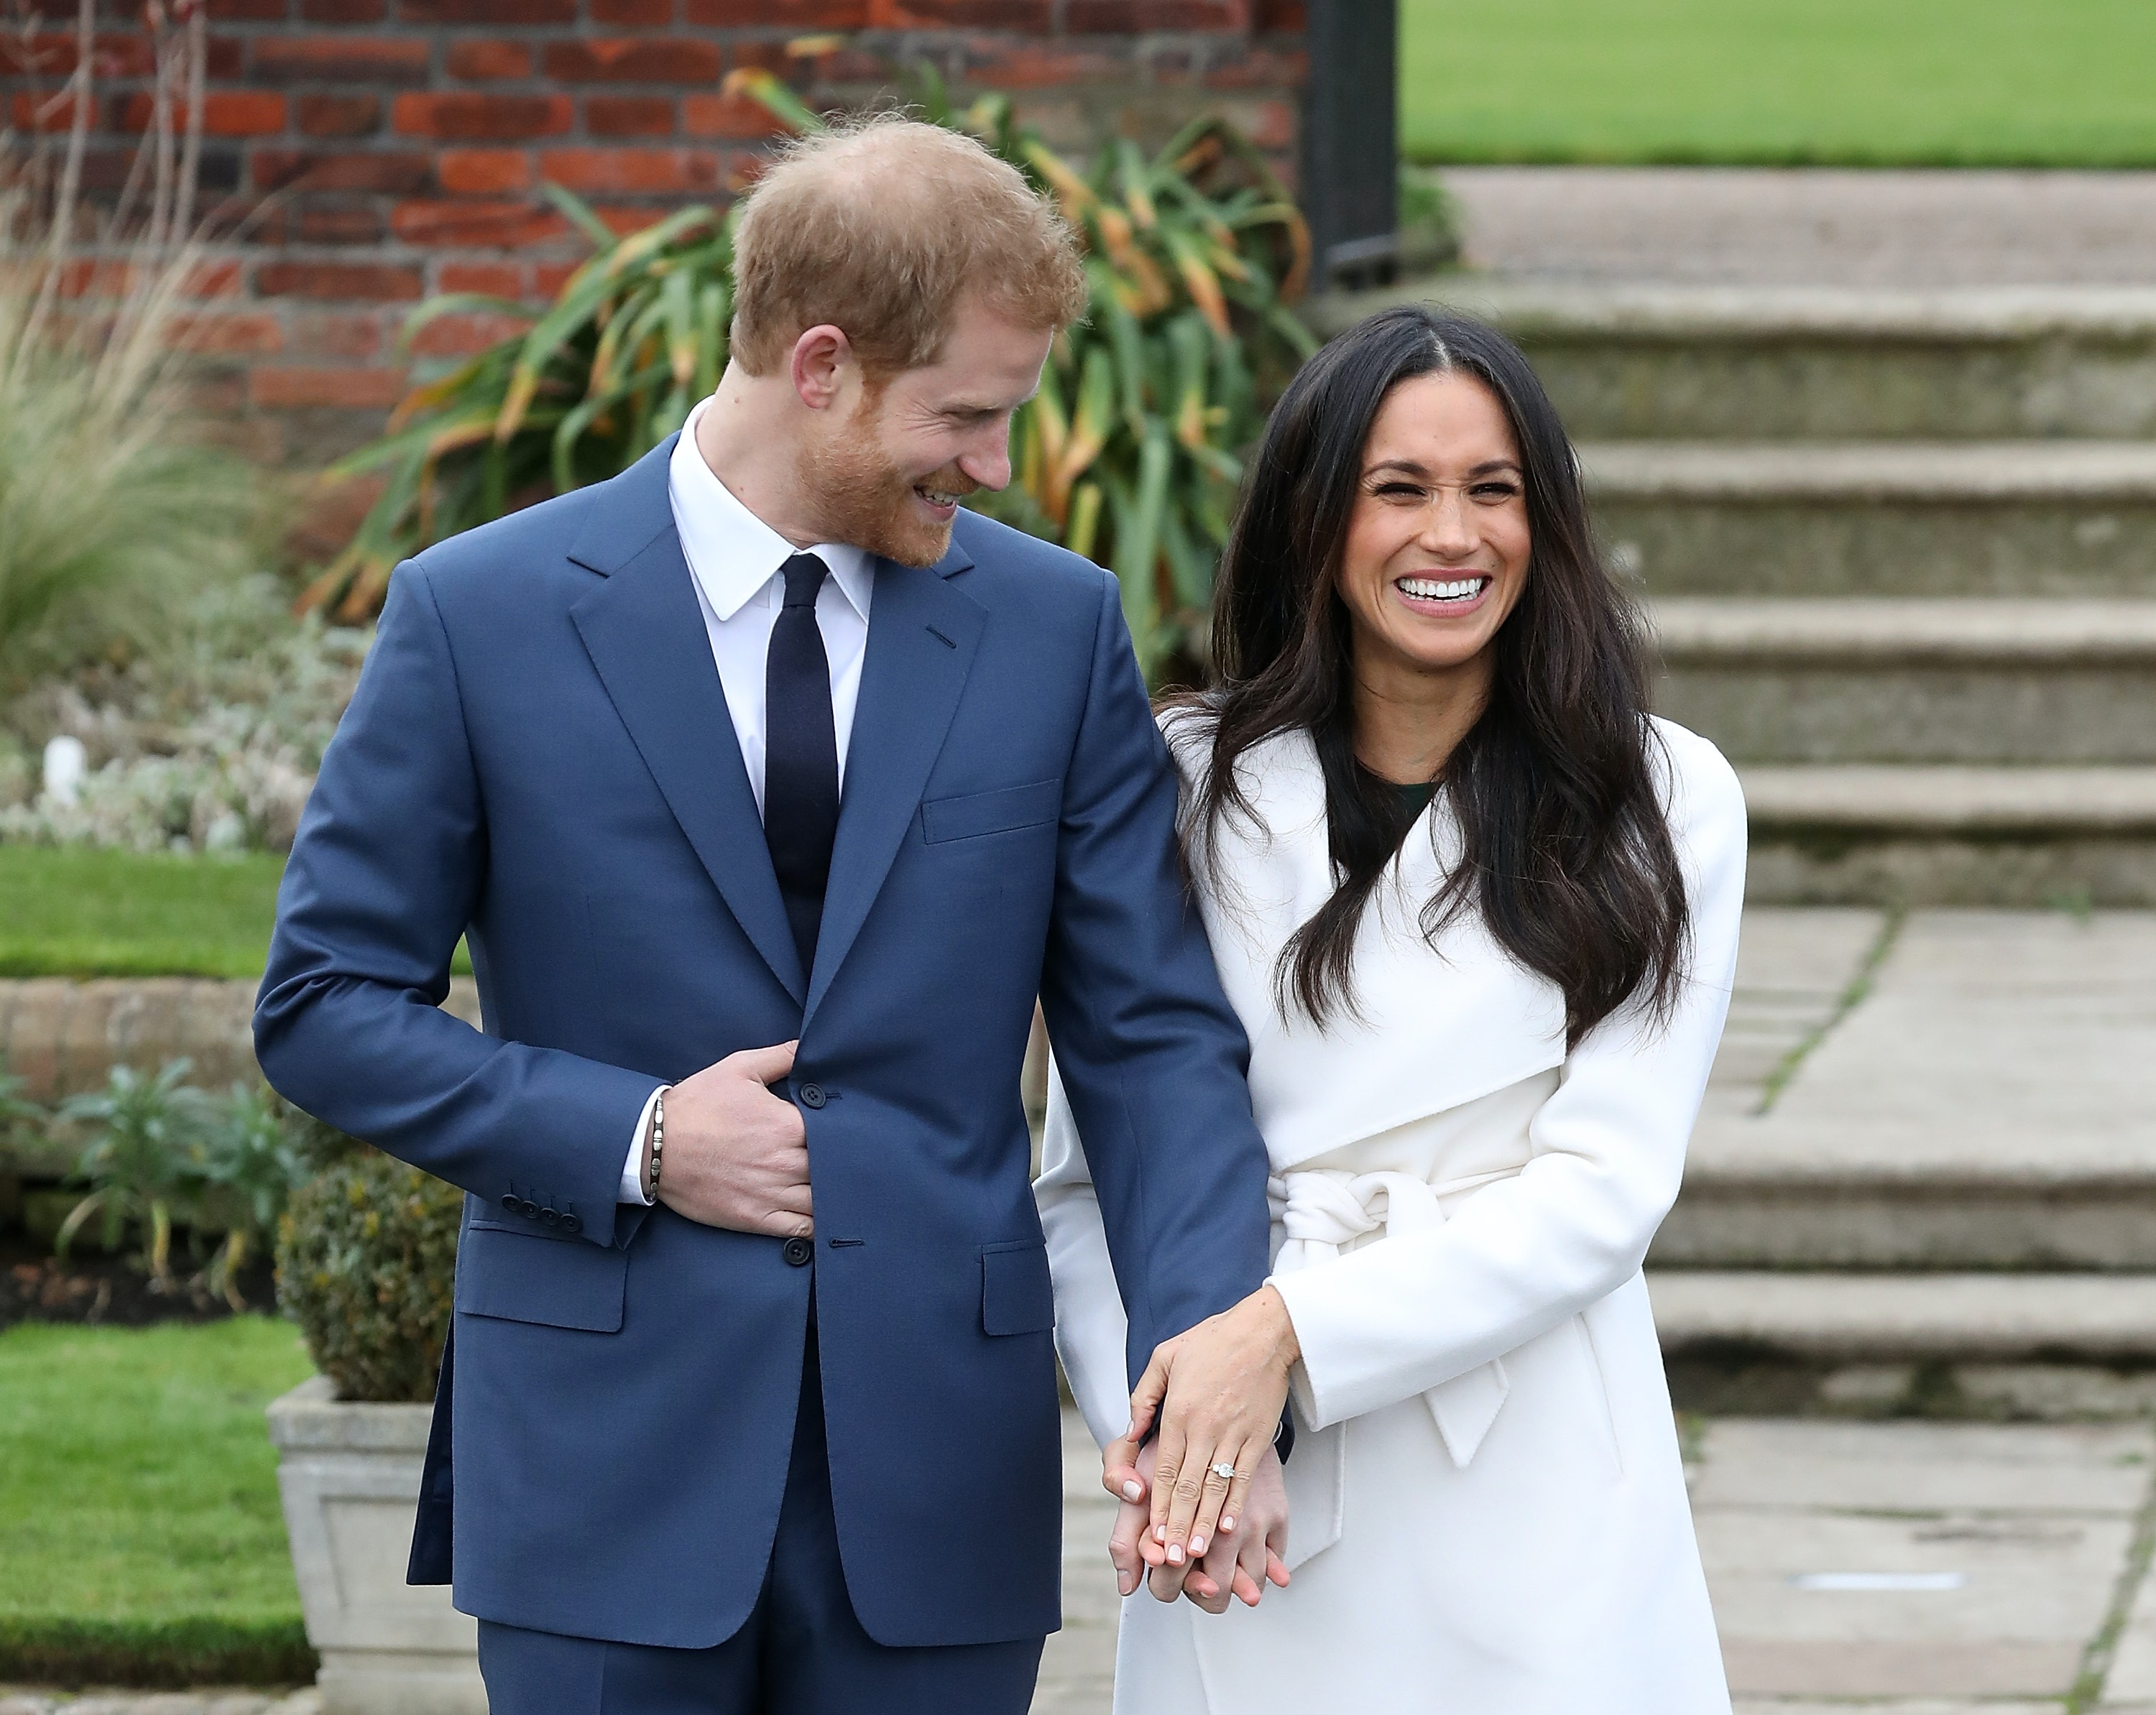 all the details about prince harry meghan markle s wedding we know so far https www bustle com p all the details about prince harry meghan markles wedding we know so far 7521409